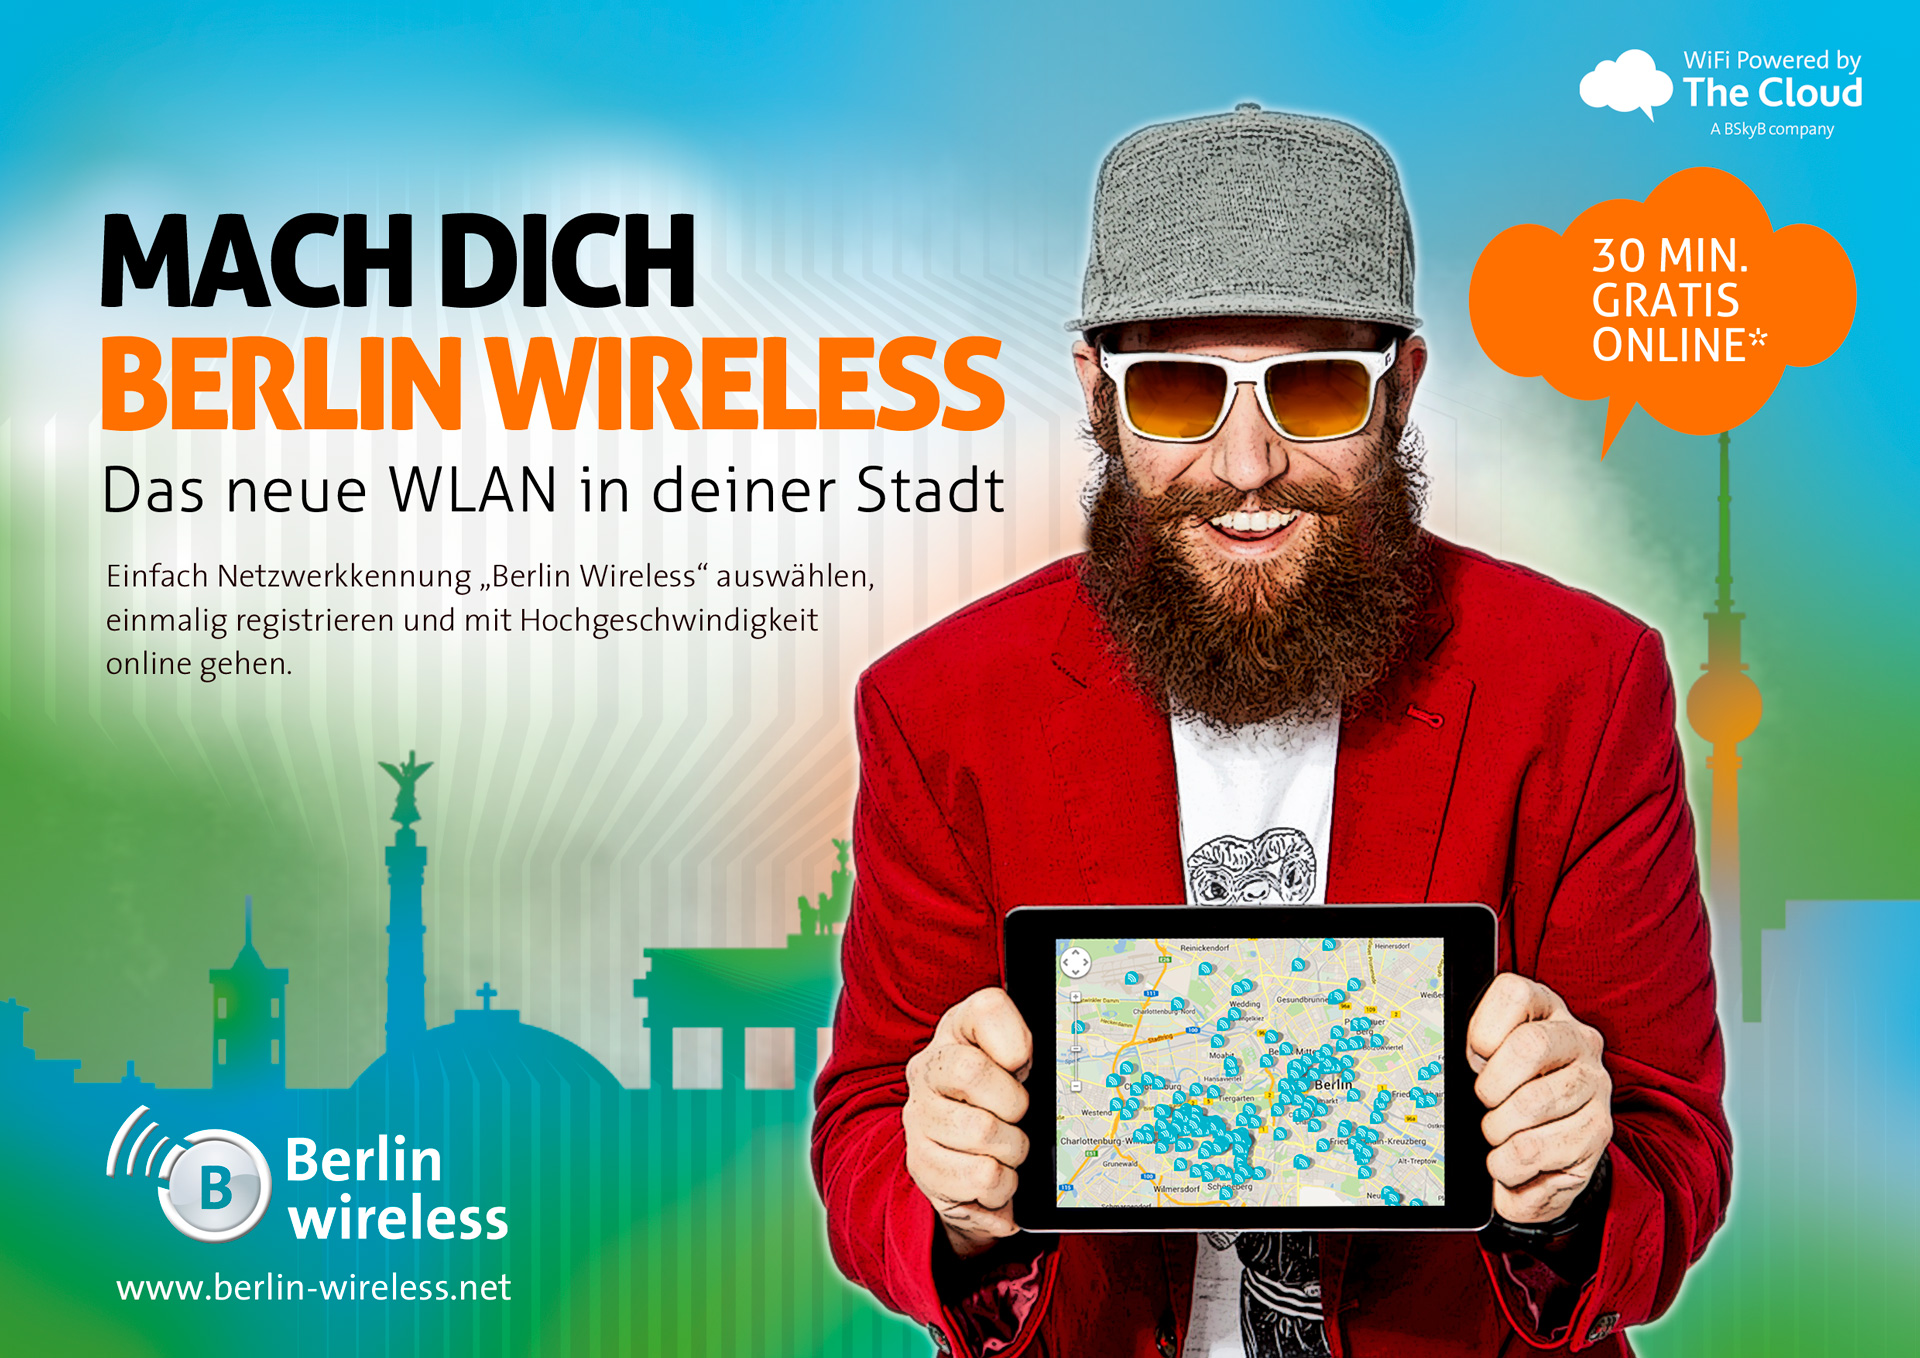 Berlin Wireless